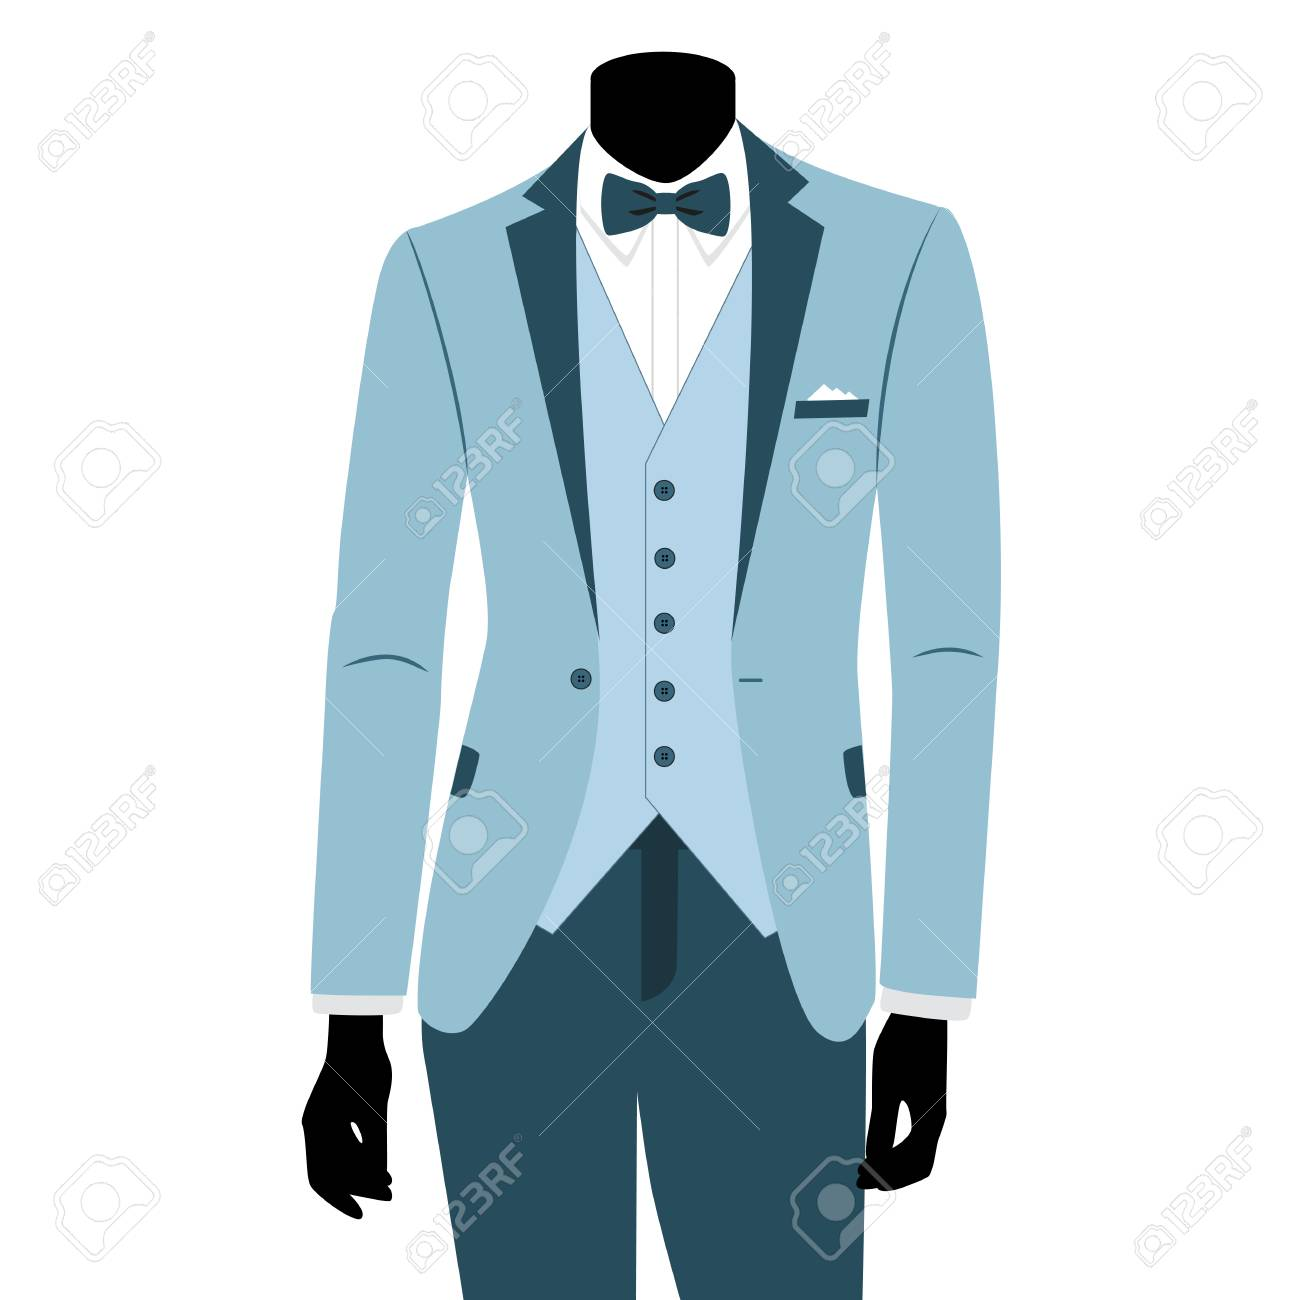 Wedding Mens Suit And Tuxedo. Royalty Free Cliparts, Vectors, And ...